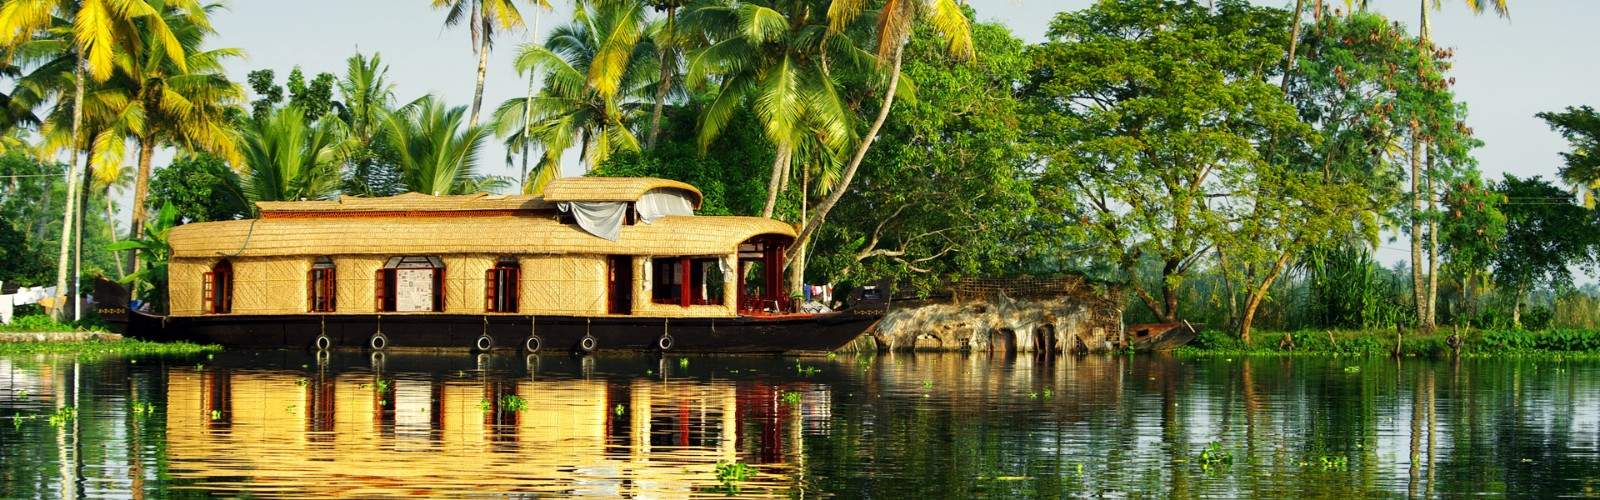 Kerala Backwater Cruise Tour | Wendy Wu Tours